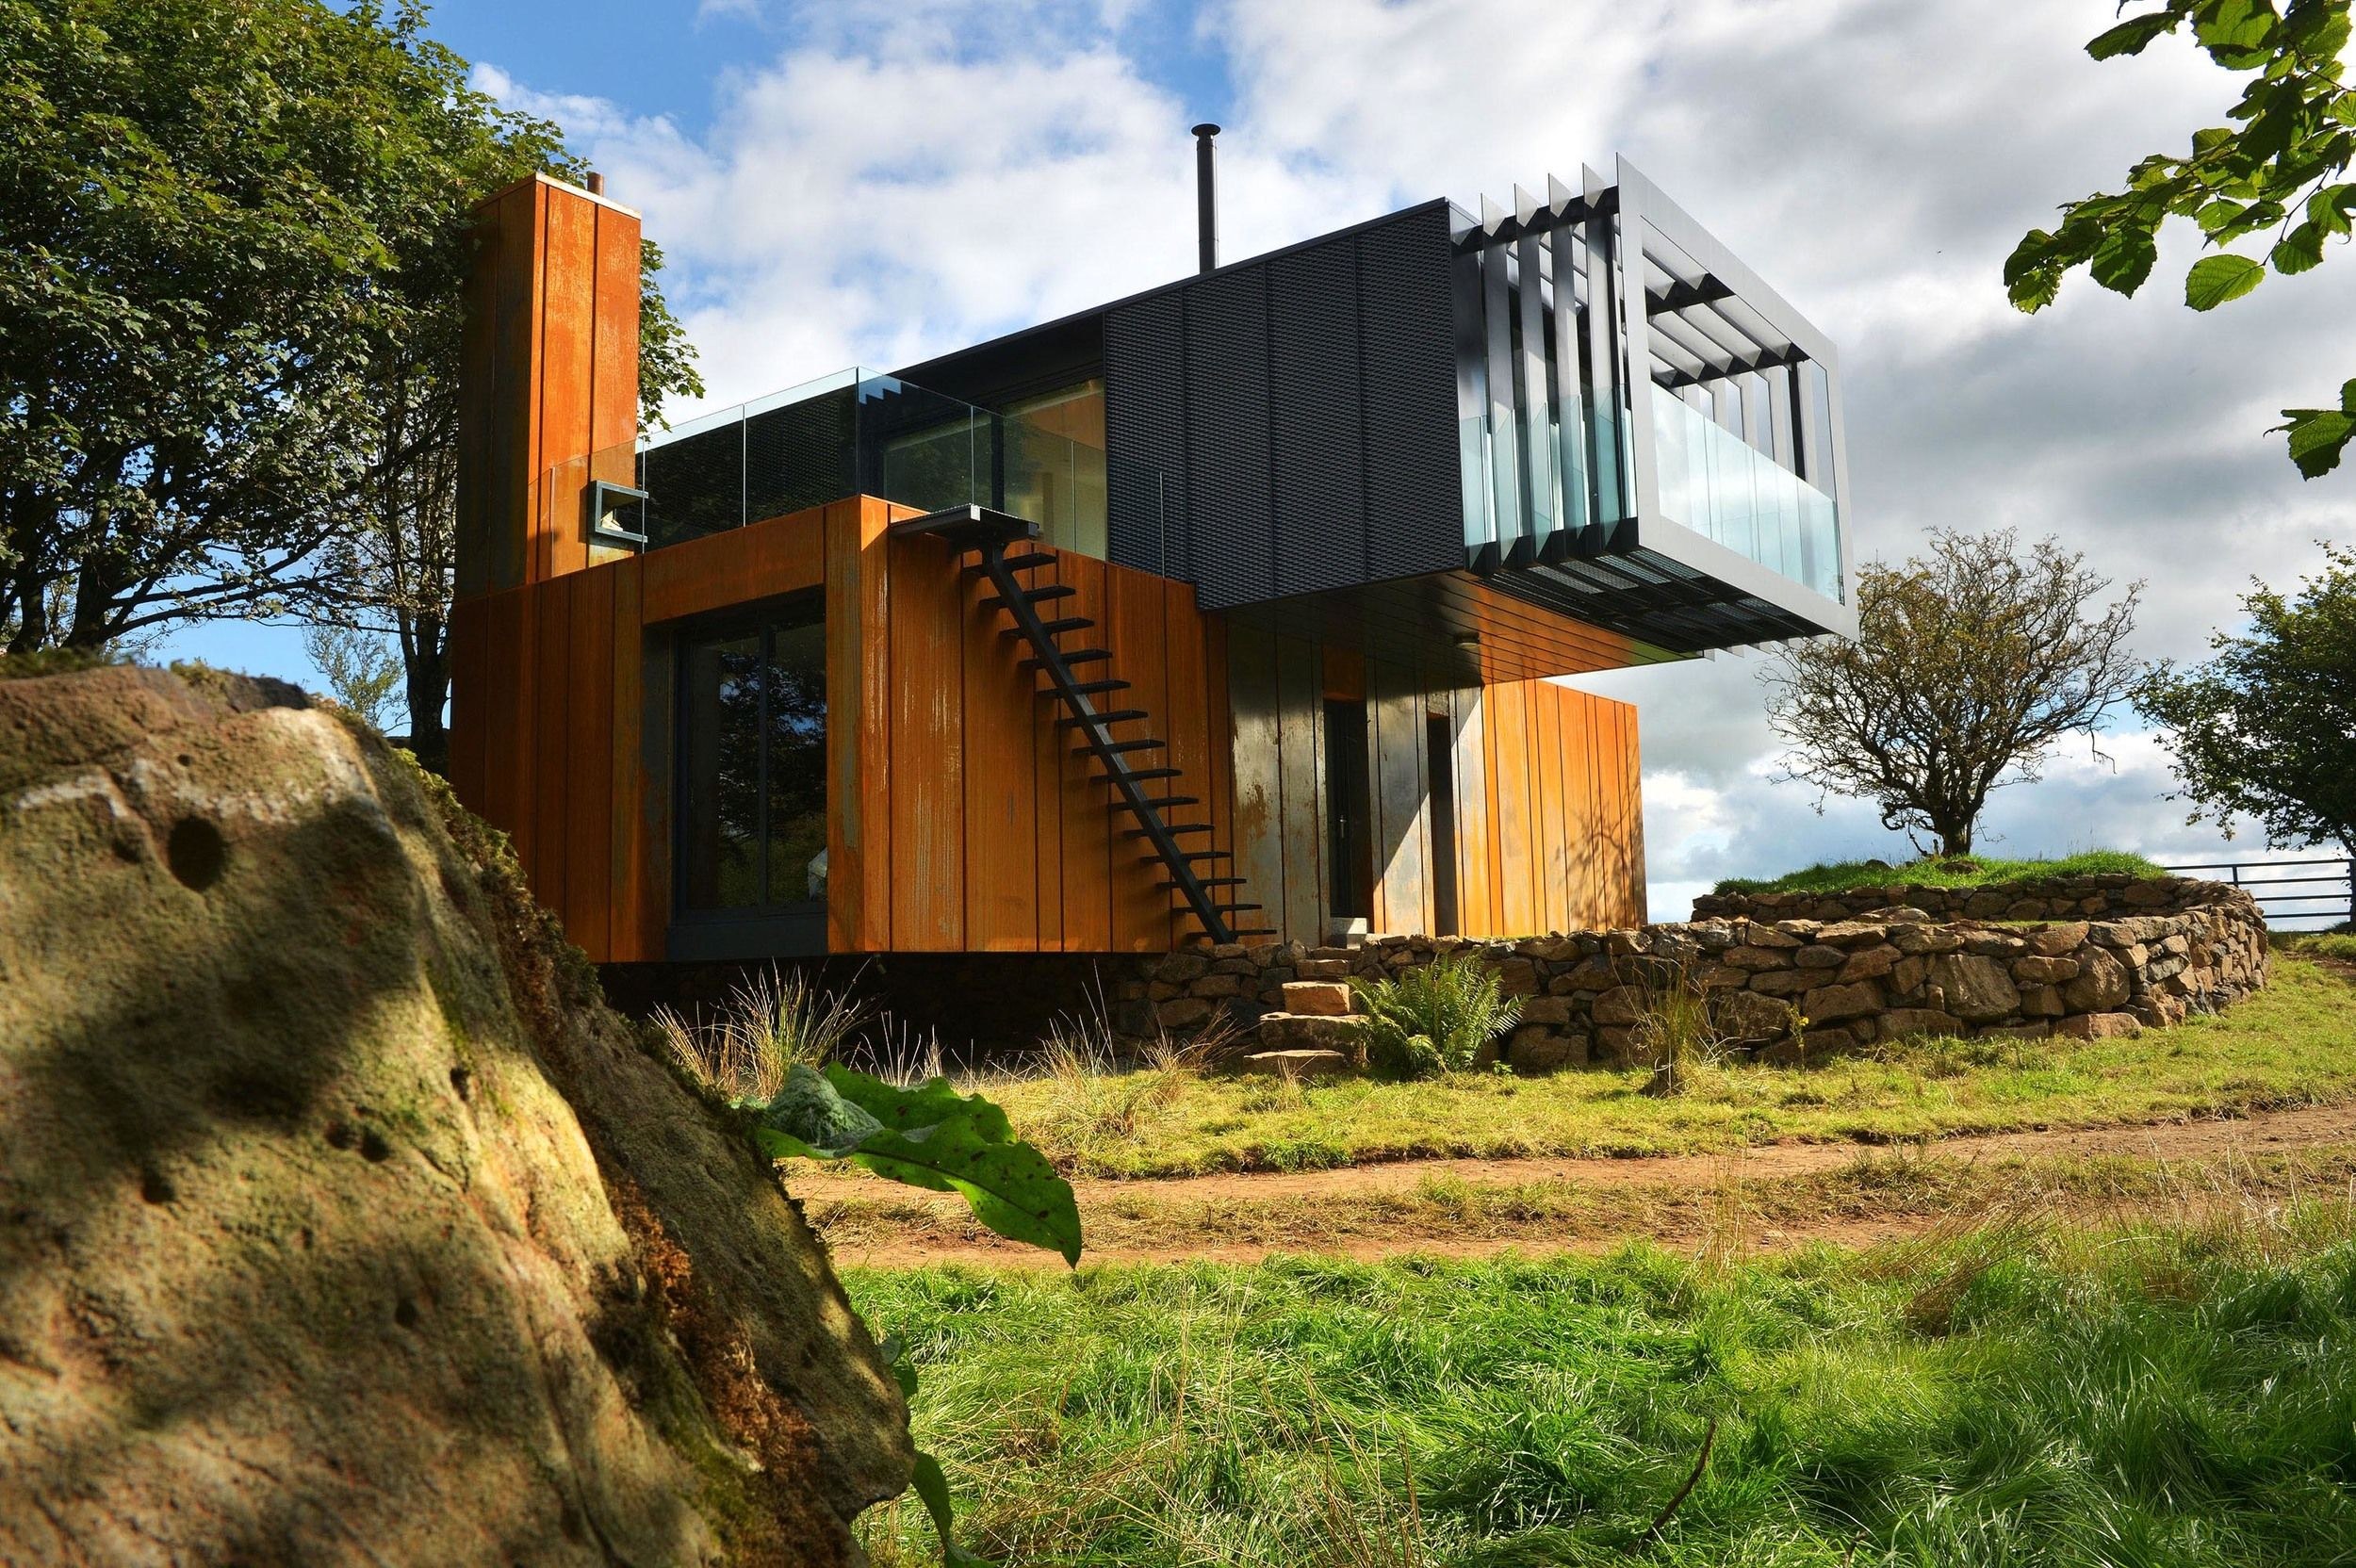 grand designs county derry - Google Search   Best of Grand Designs ...